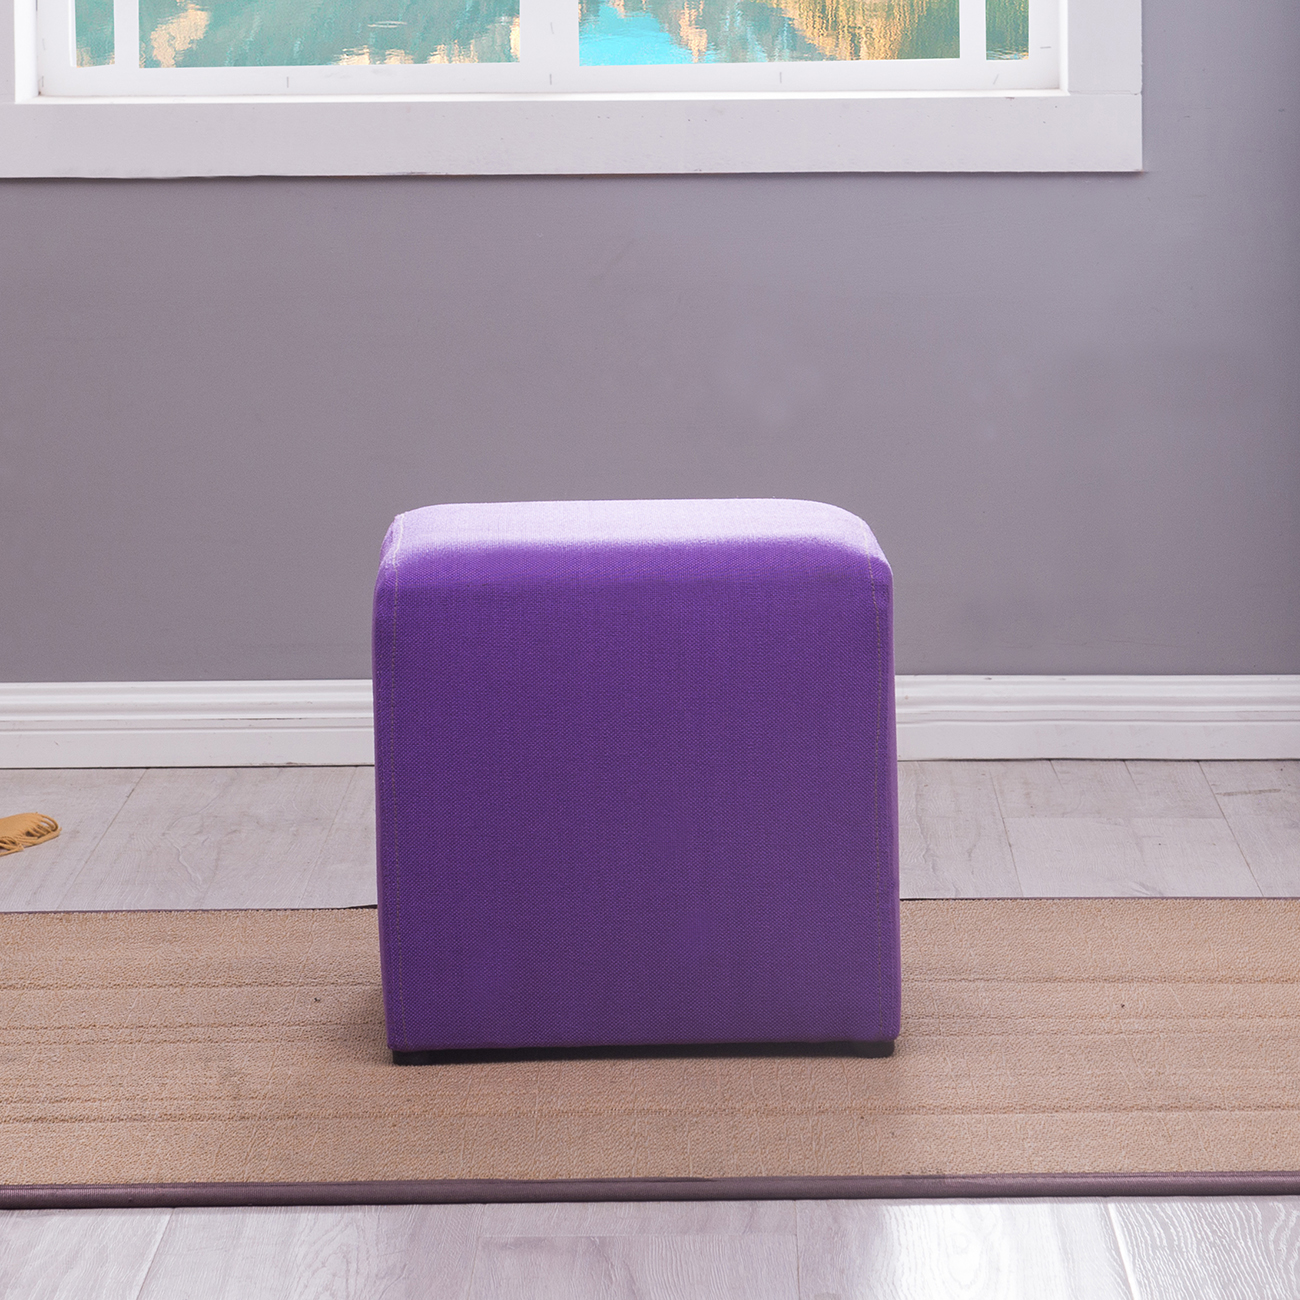 lightweight itm seating rest purple frame hg pu ottoman square cube green foot stool